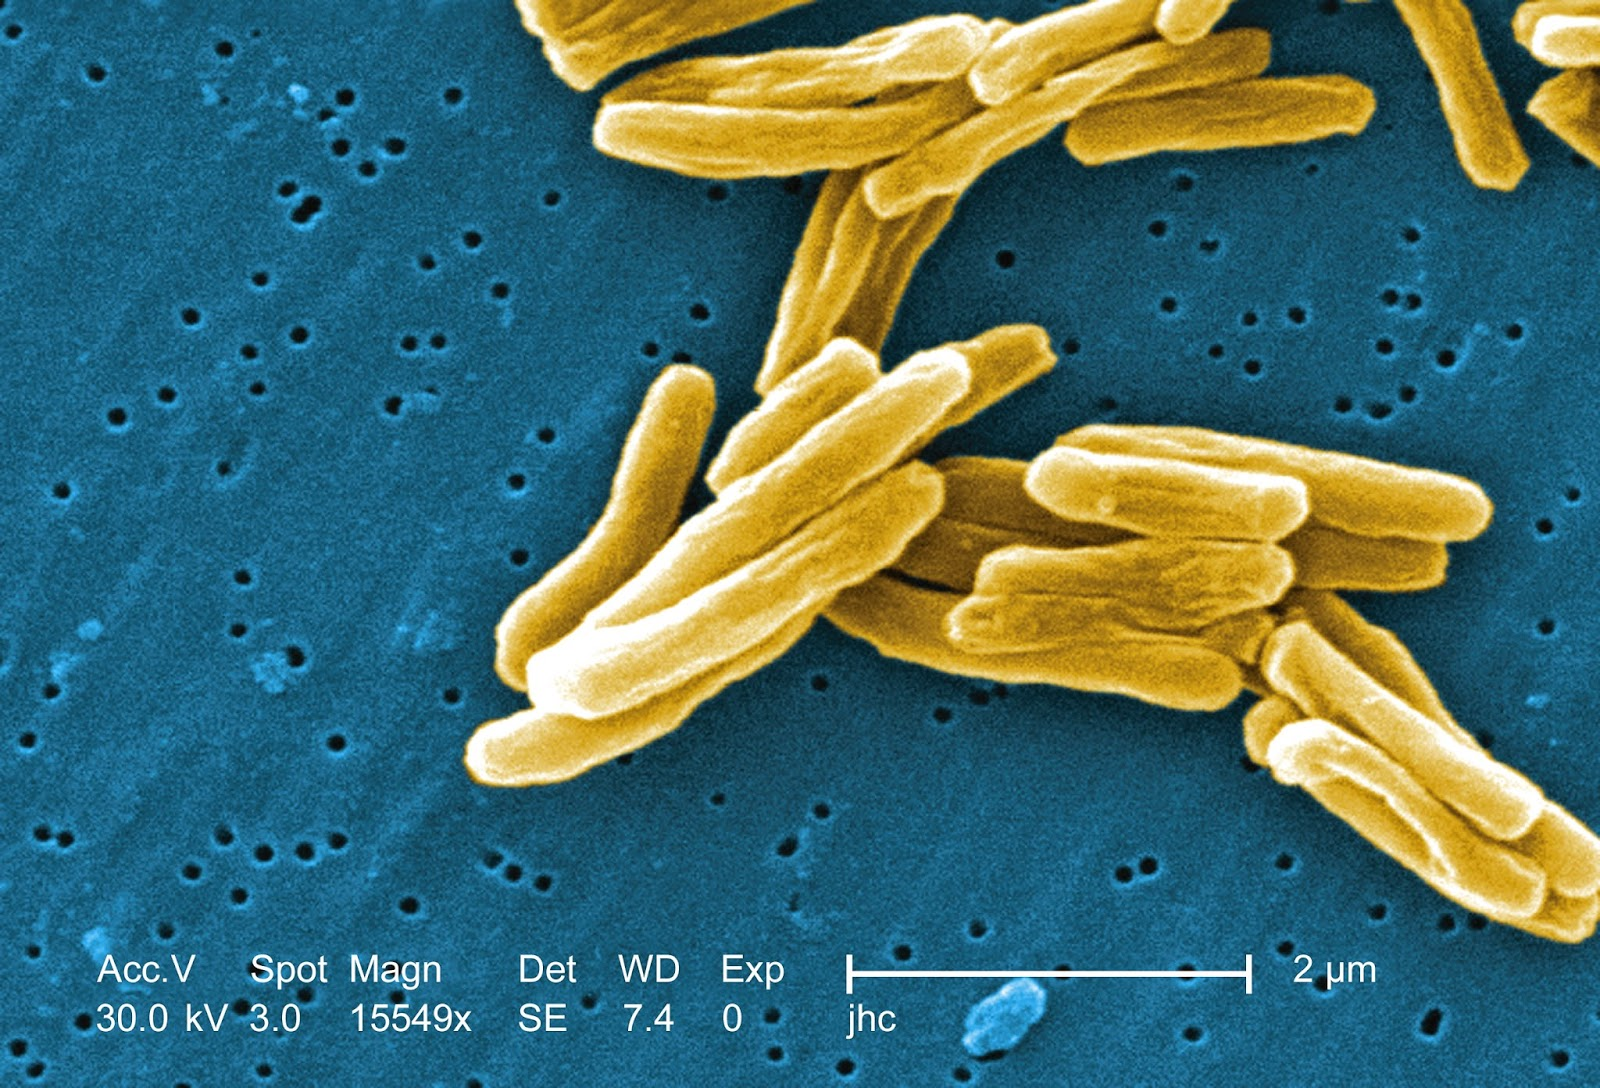 Fresh Water Sources To Fight Drug-Resistant Tuberculosis